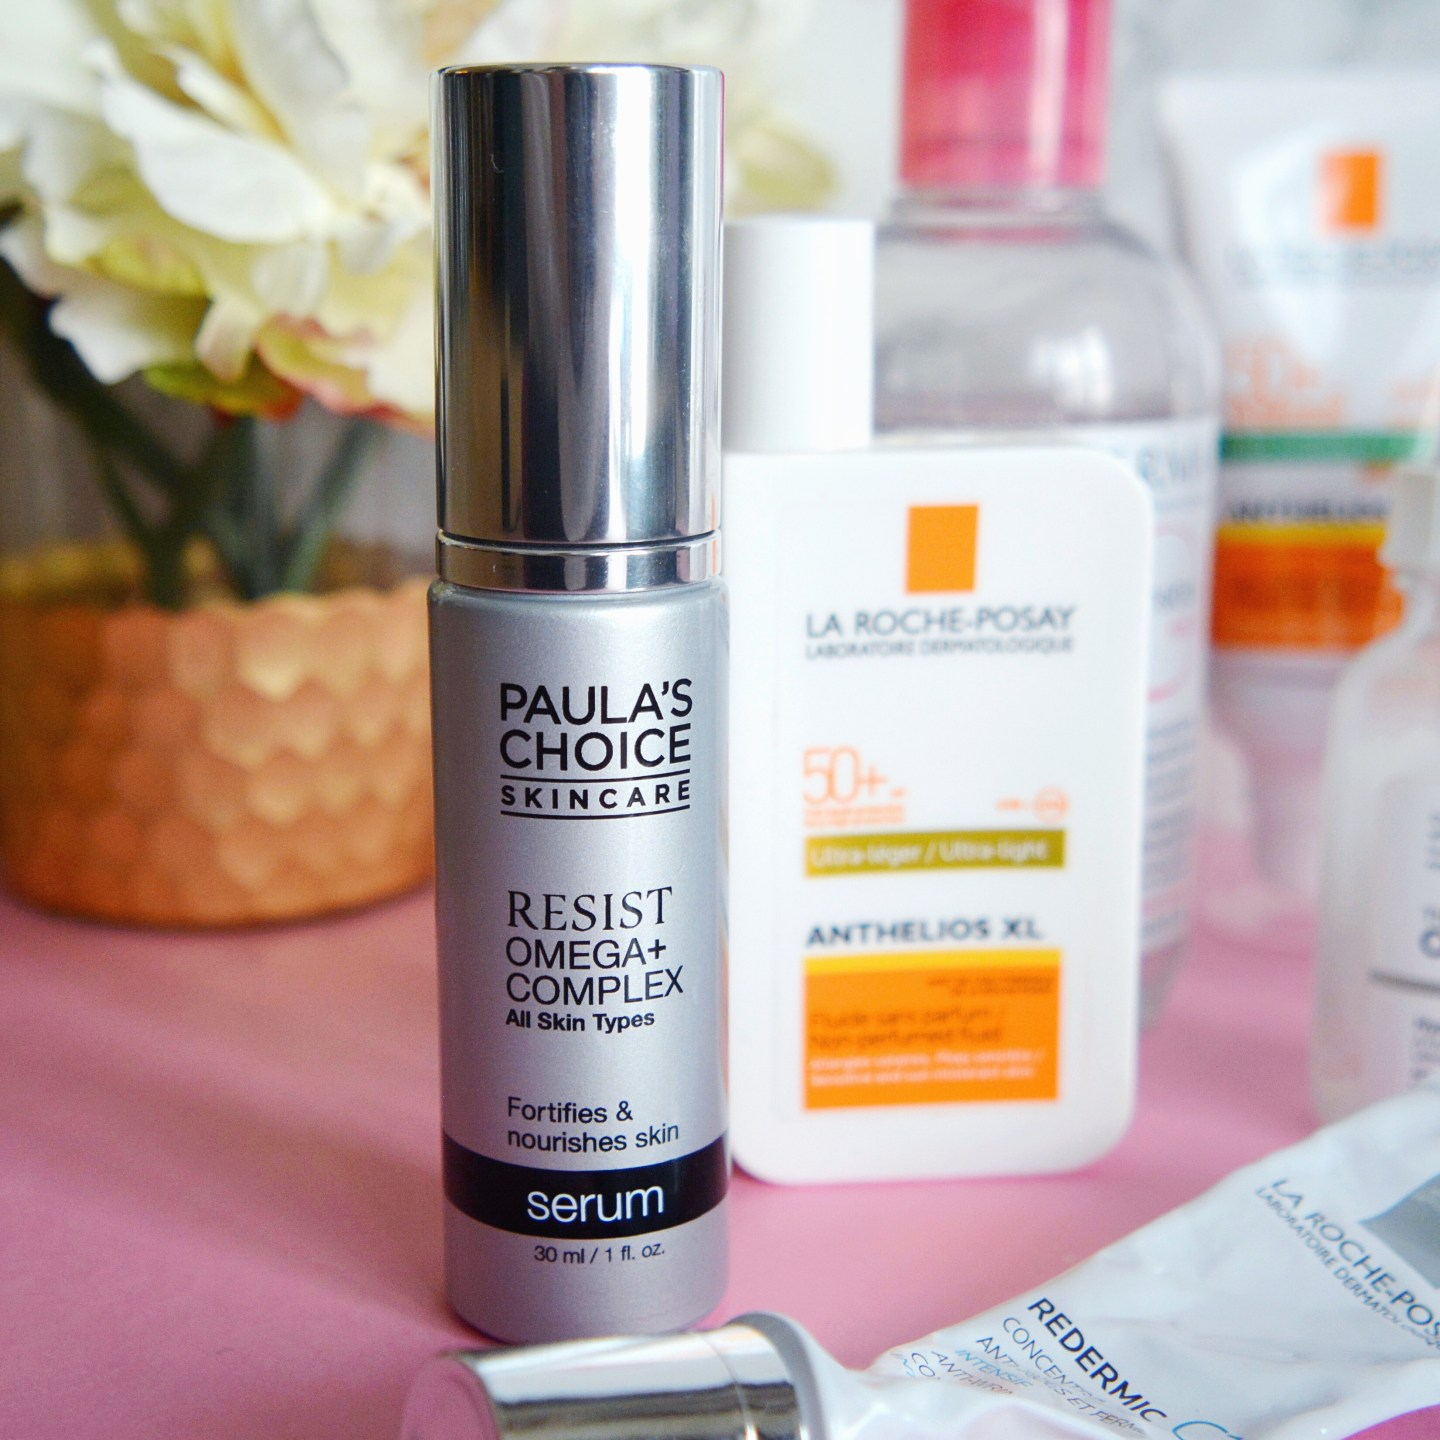 Paula's Choice Resist Omega+ Complex serum